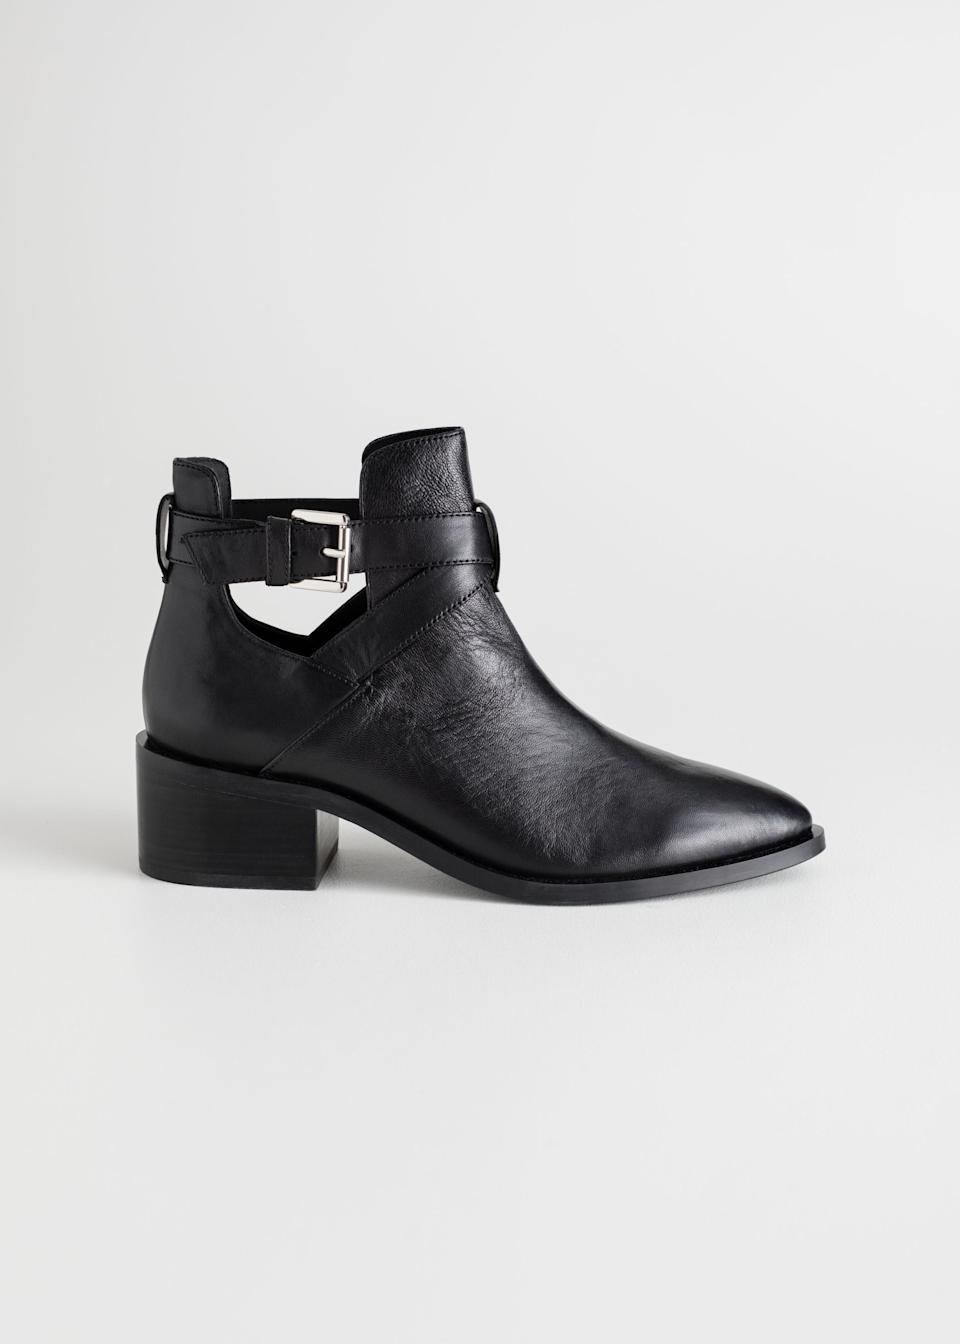 "<br><br><strong>& Other Stories</strong> Cut Out Leather Ankle Boots, $, available at <a href=""https://go.skimresources.com/?id=30283X879131&url=https%3A%2F%2Fwww.stories.com%2Fen_usd%2Fshoes%2Fboots%2Fankleboots%2Fproduct.cut-out-leather-ankle-boots-black.0399291001.html"" rel=""nofollow noopener"" target=""_blank"" data-ylk=""slk:& Other Stories"" class=""link rapid-noclick-resp"">& Other Stories</a>"